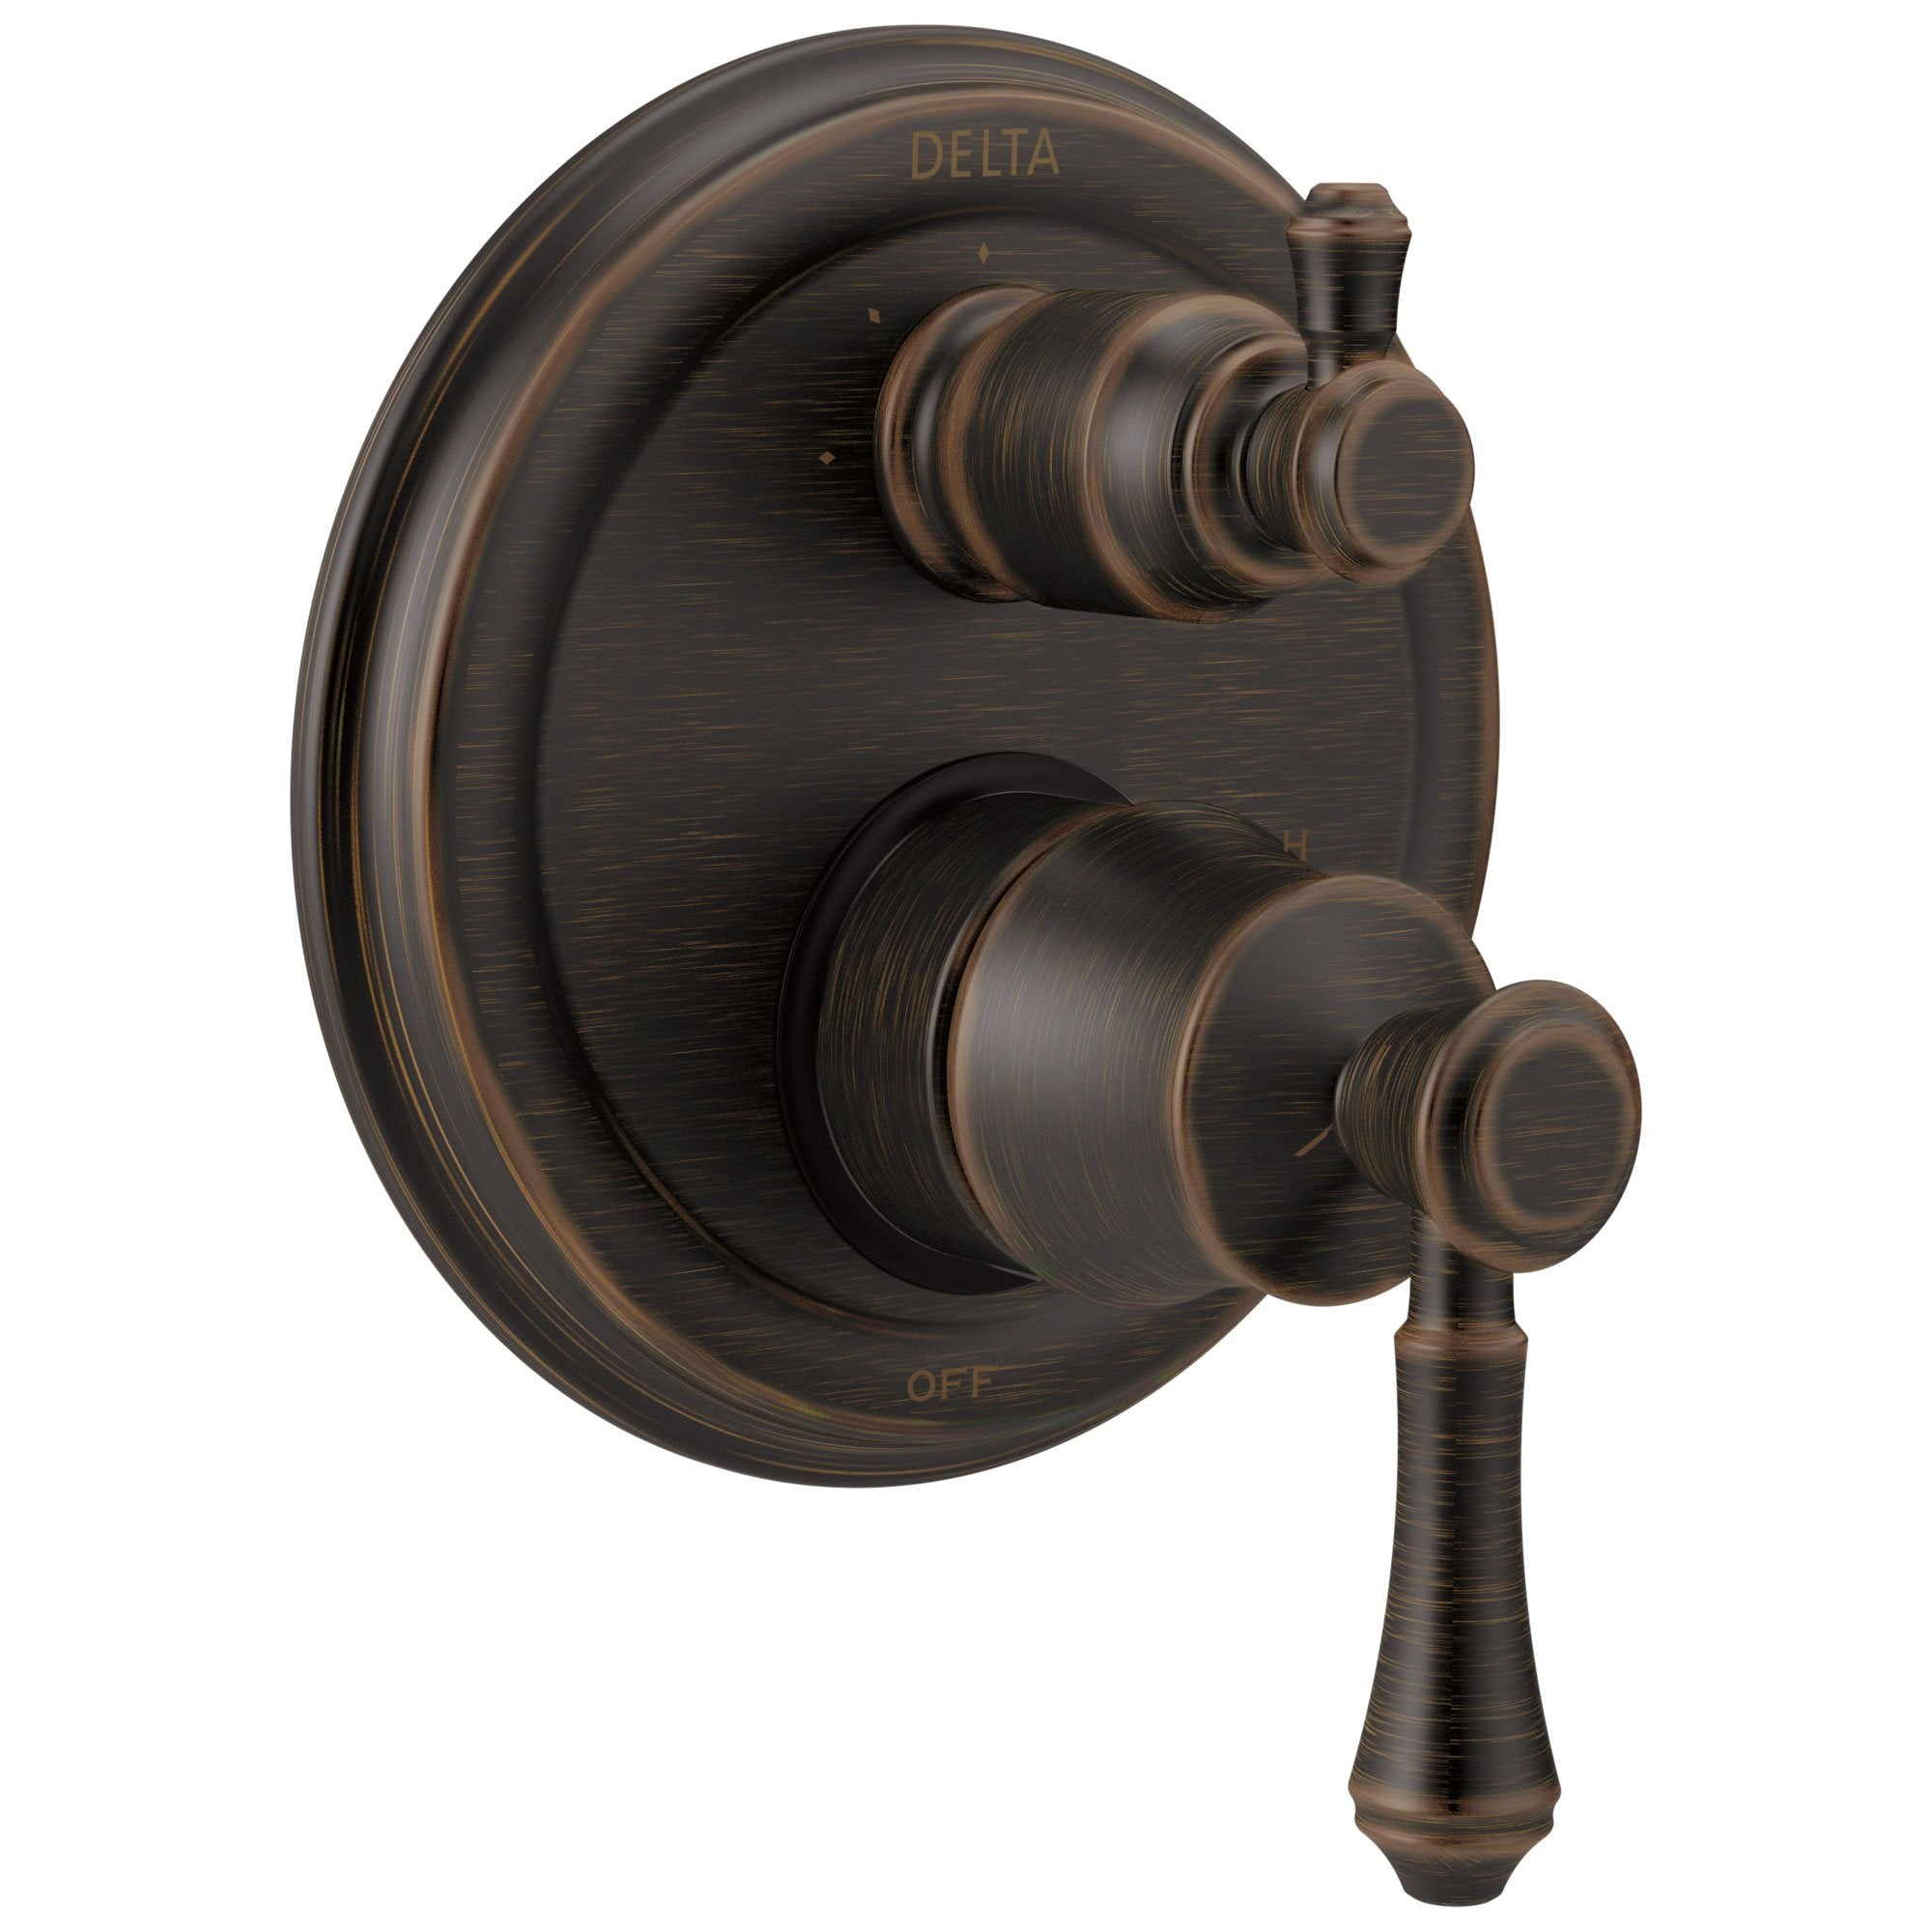 Delta Cassidy Venetian Bronze Shower Faucet Valve Trim Control Handle with 3-Setting Integrated Diverter Includes Trim Kit and Valve without Stops D2204V